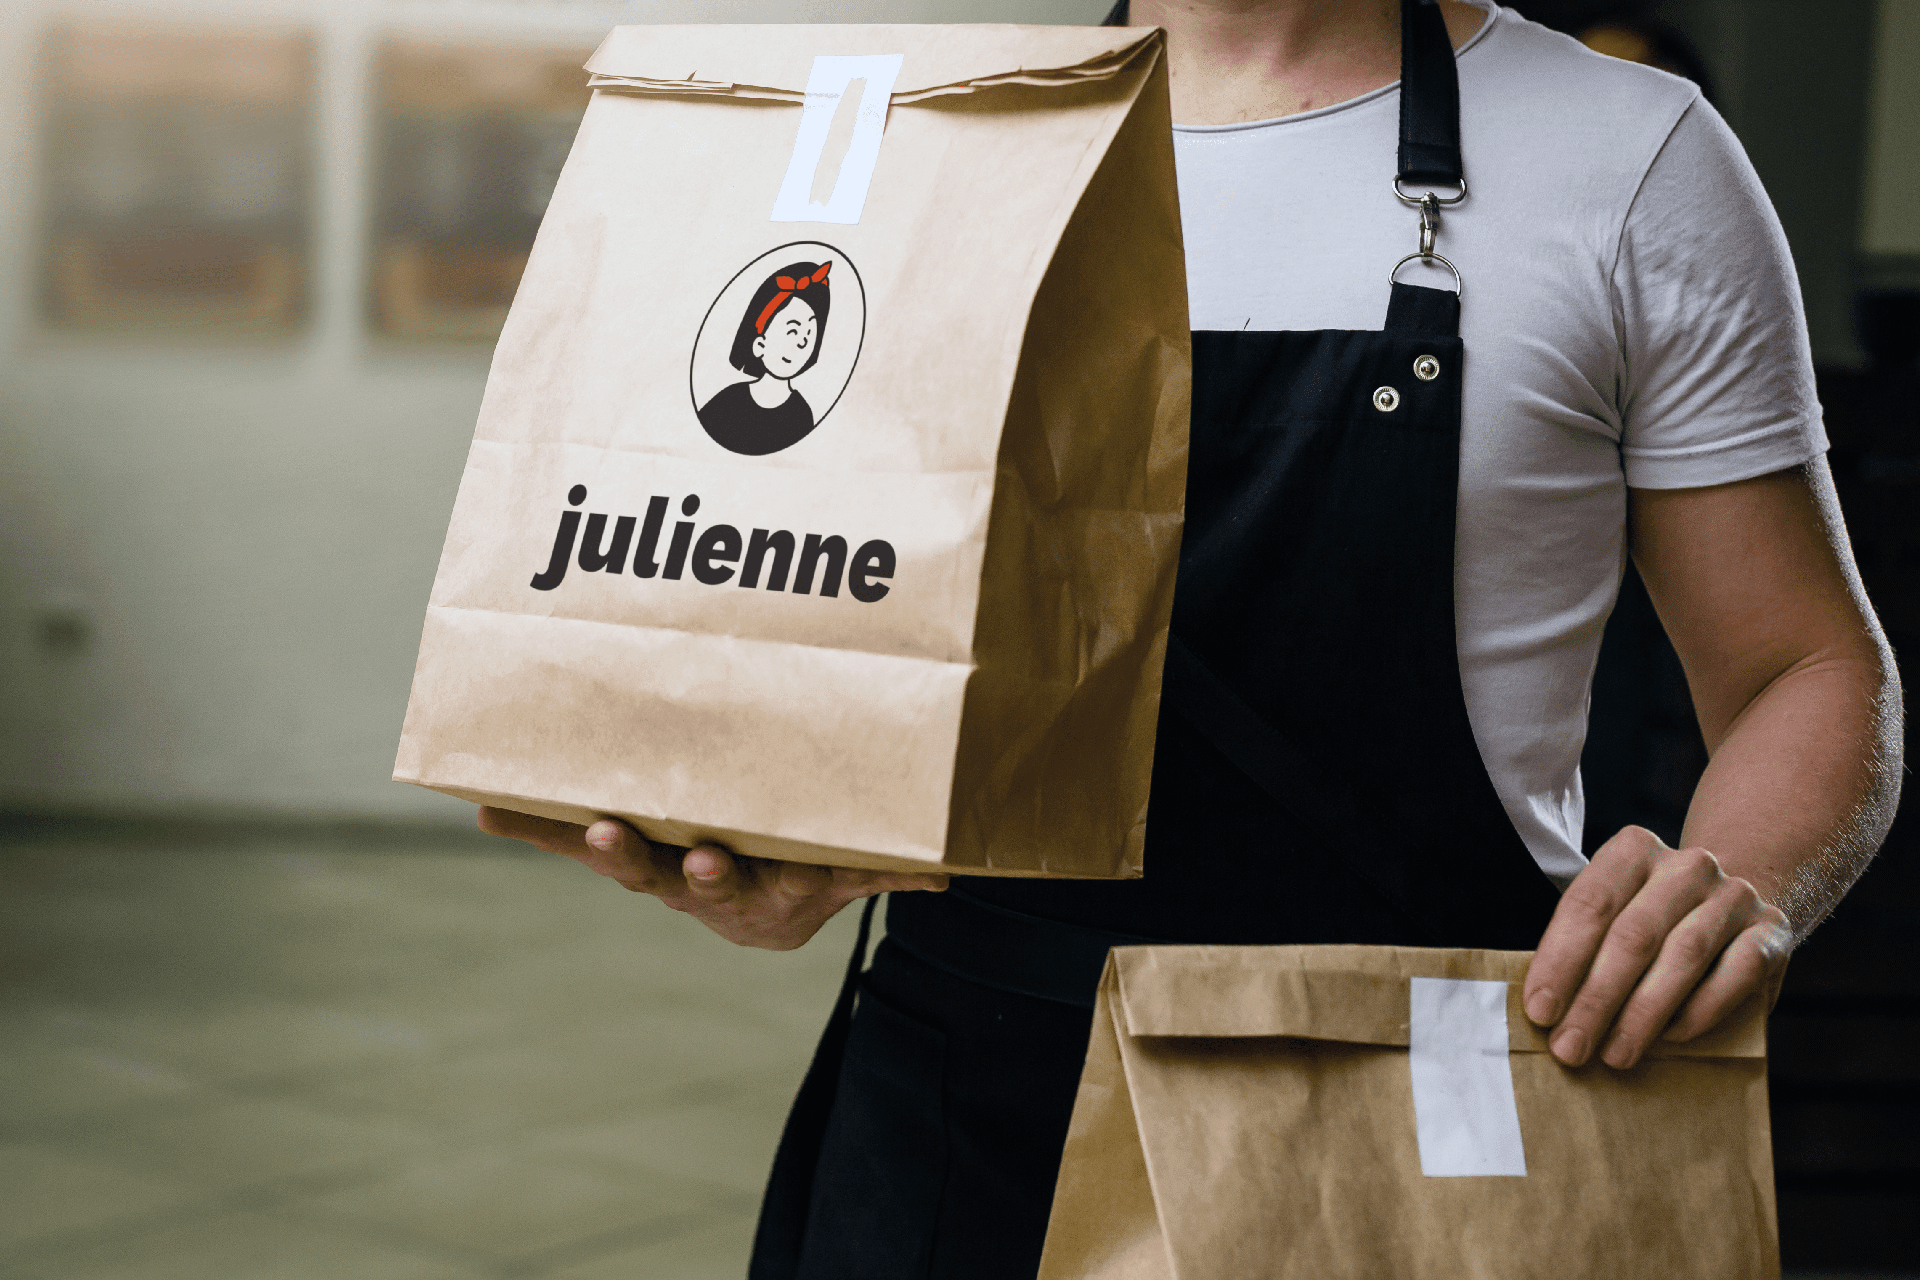 Julienne branding on recycled paper bags